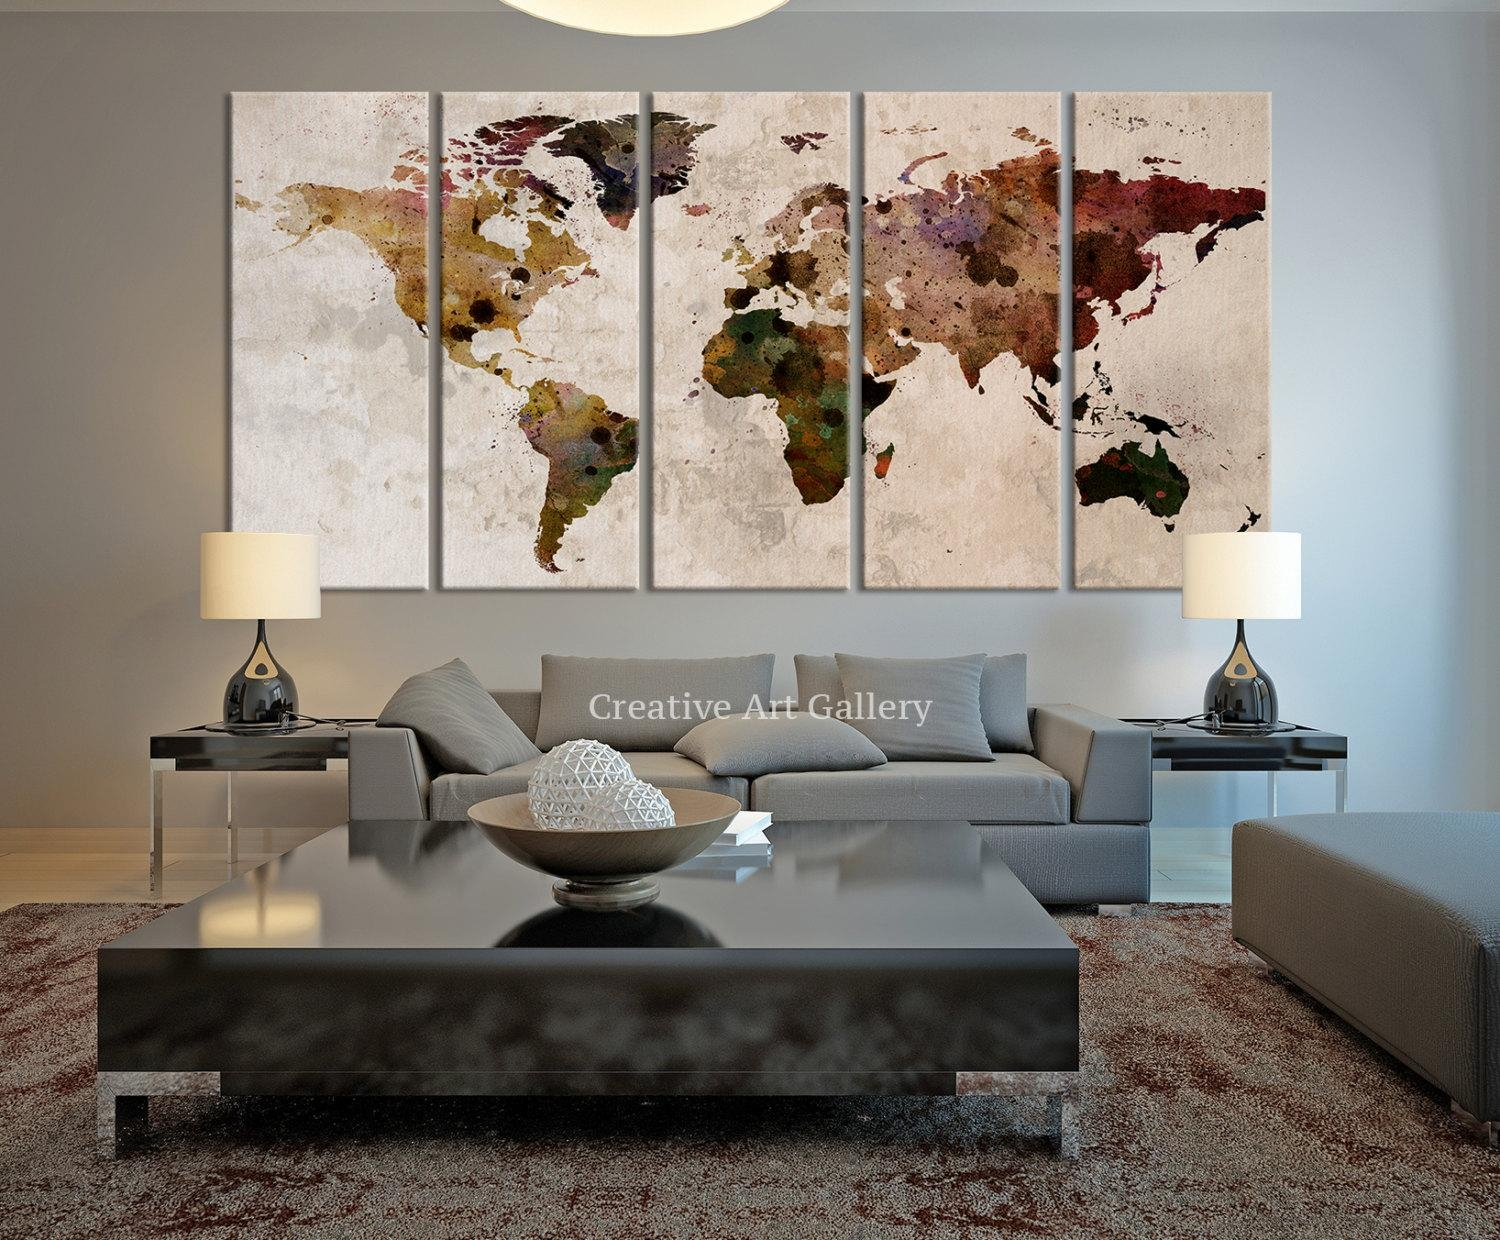 Wall Ideas: Extra Large Wall Art Images (View 13 of 20)